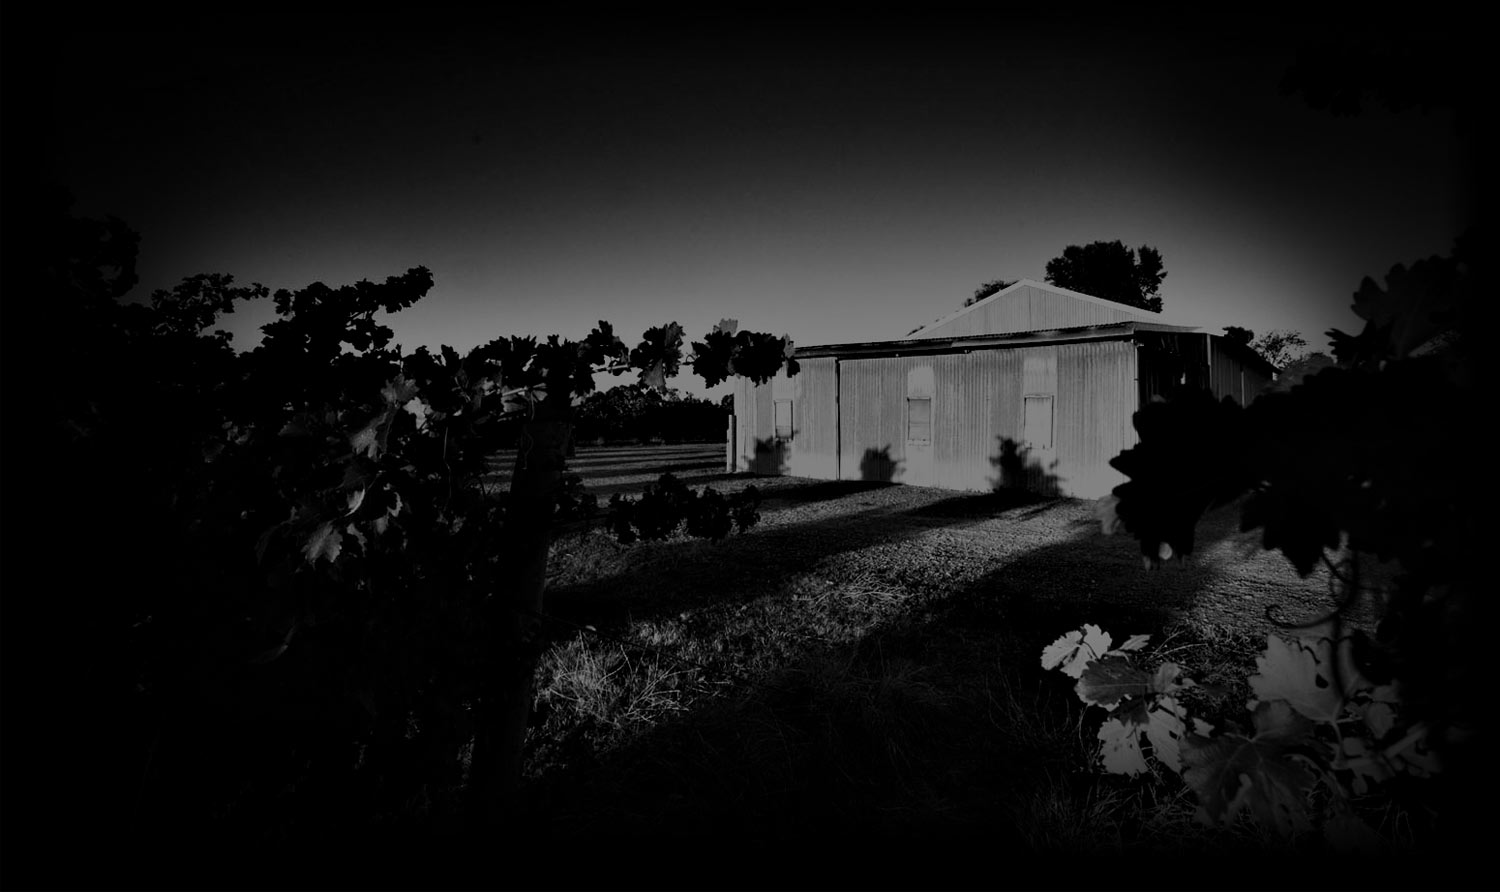 Moody Winery Image